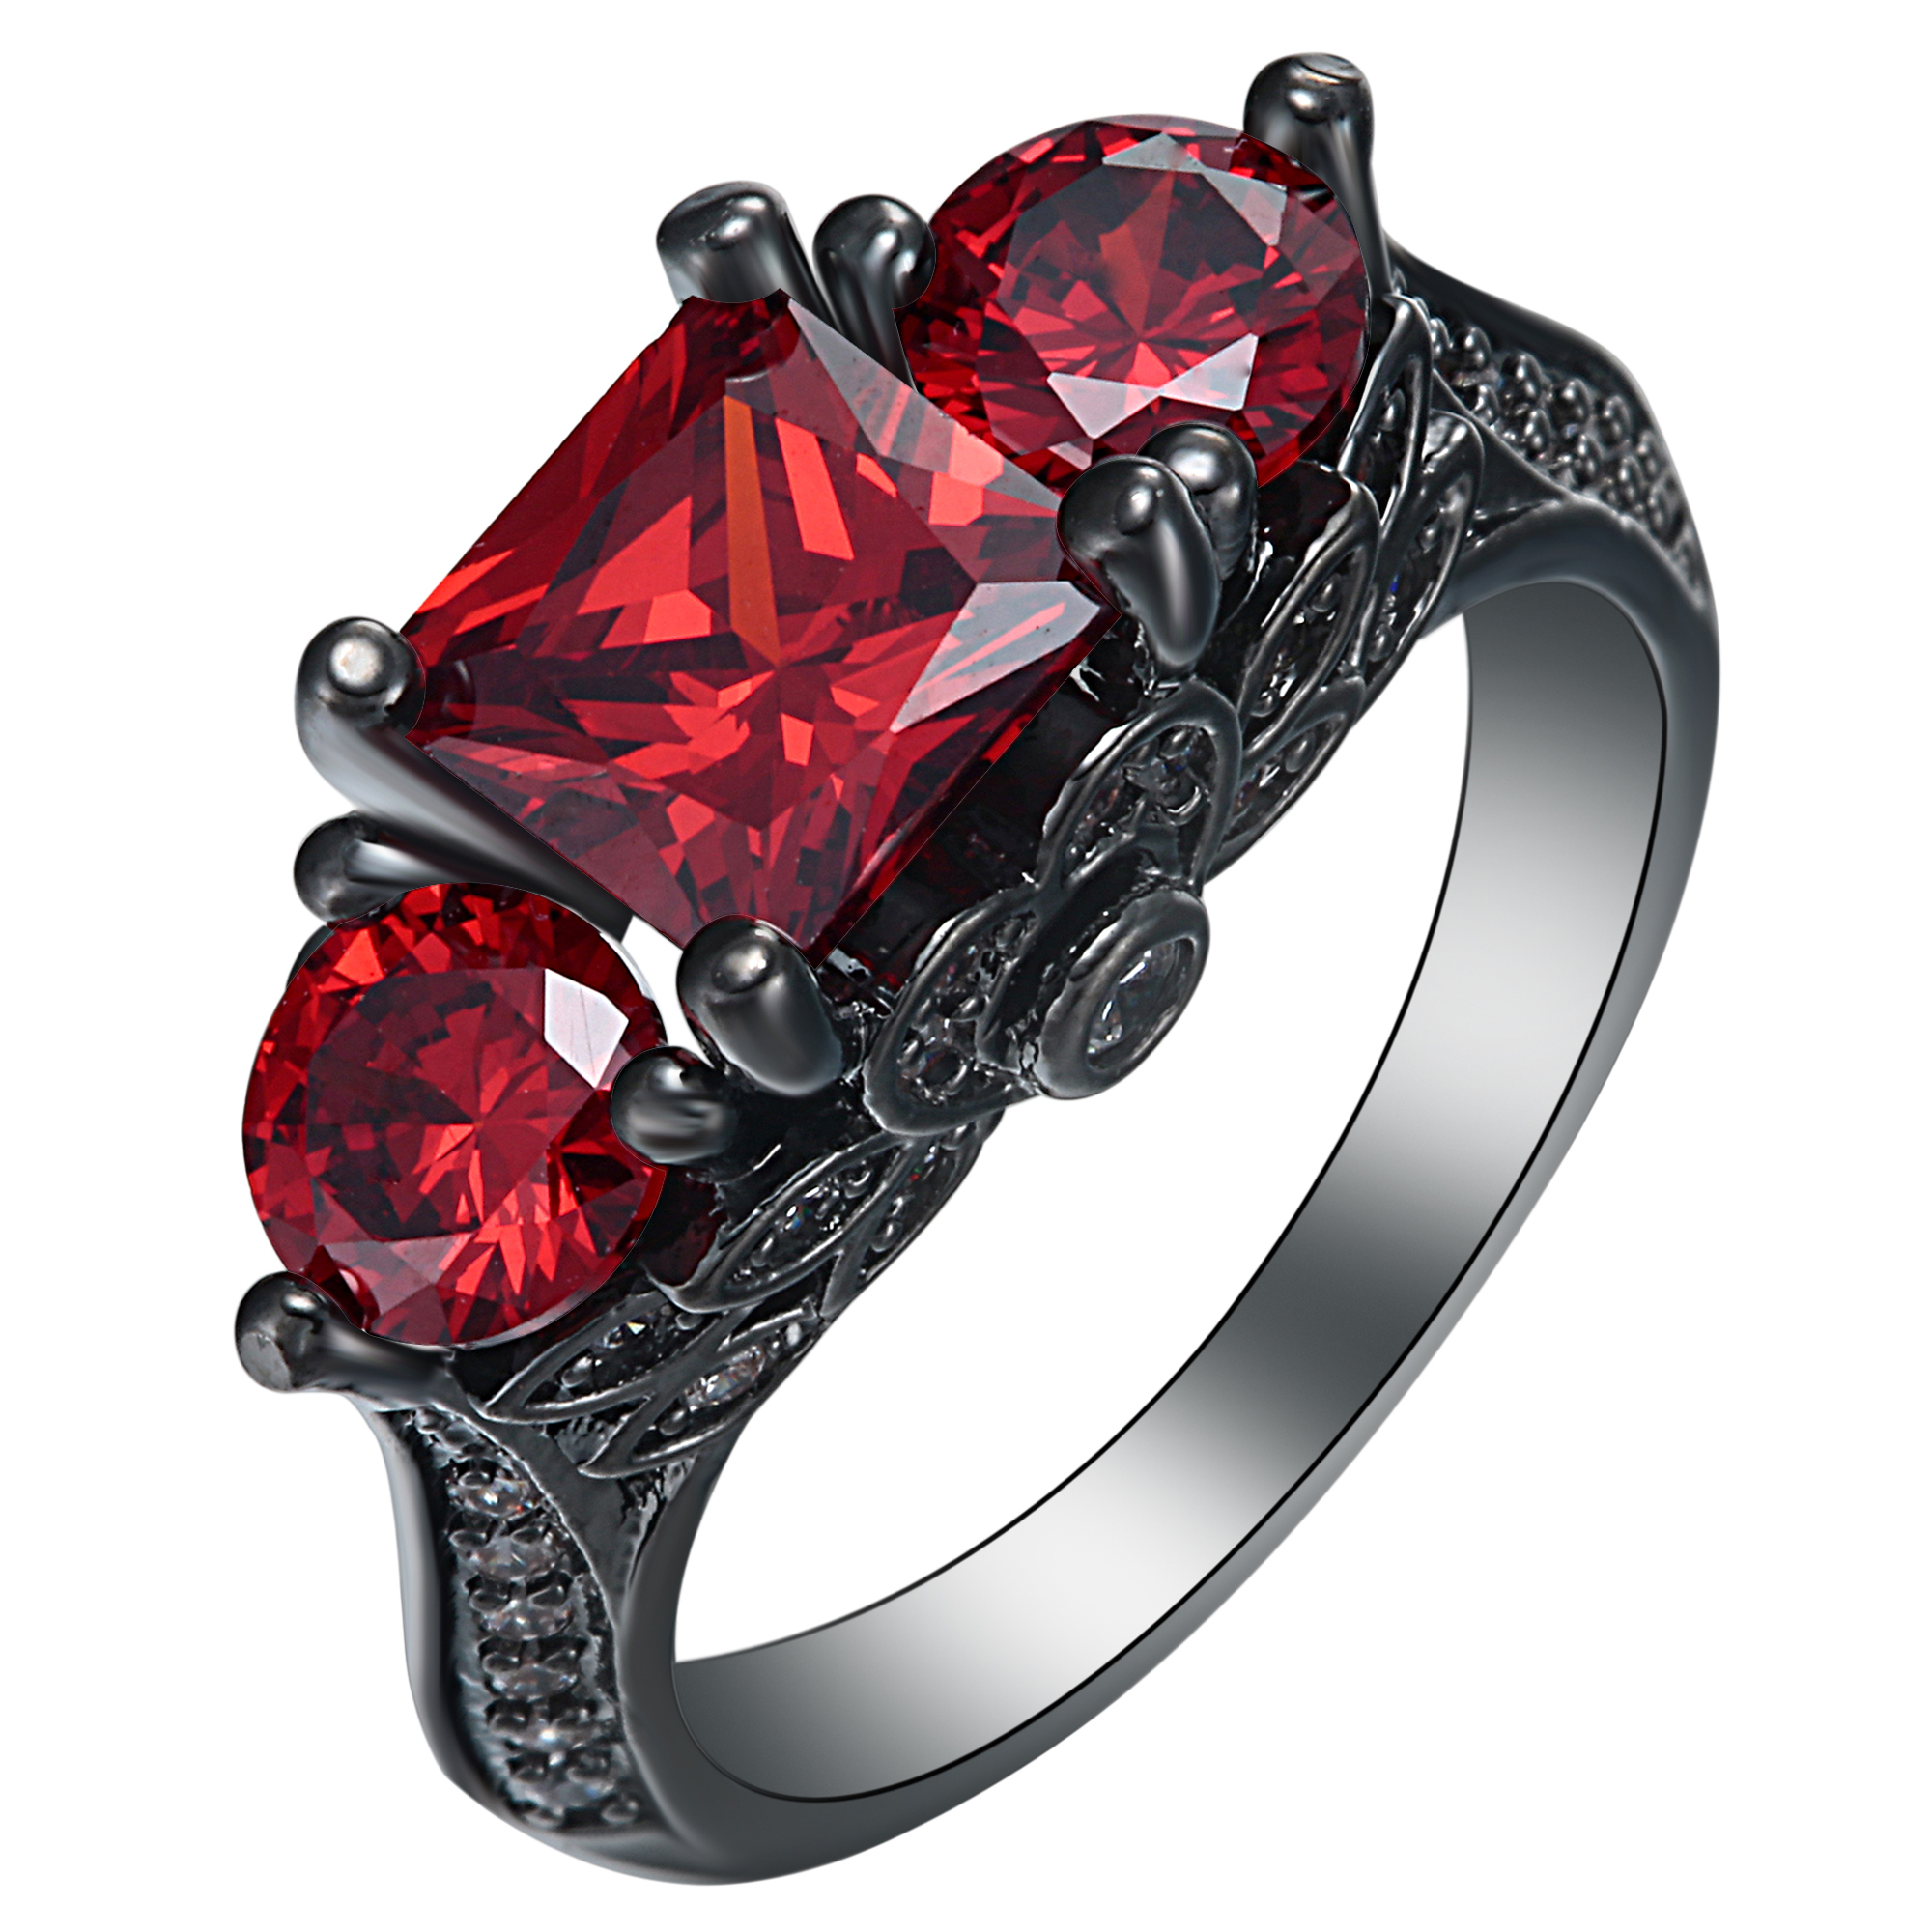 mozambique rings ruby diamonds store gold with p red solitaire online diamond ring white